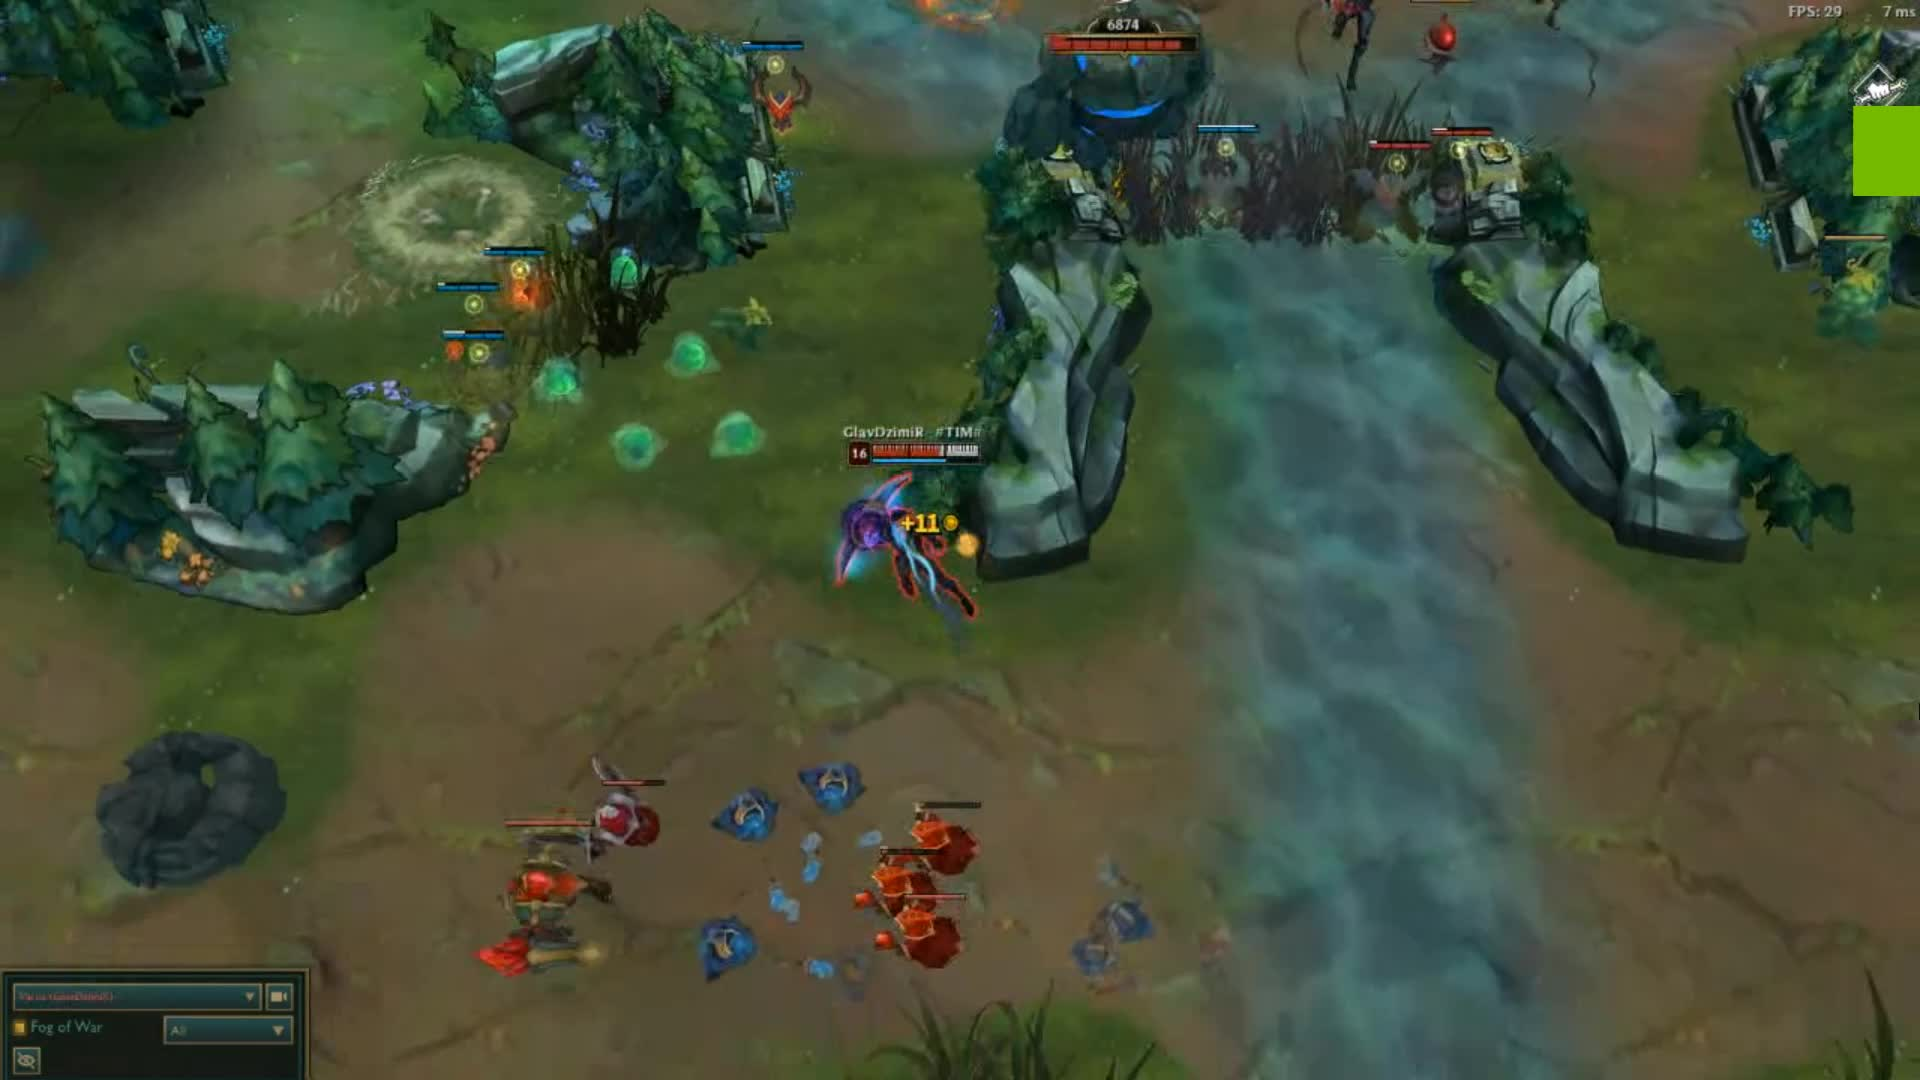 Champion, Kite, Kiting, League of legends, Varus, leagueoflegends, My kiting skills. GIFs